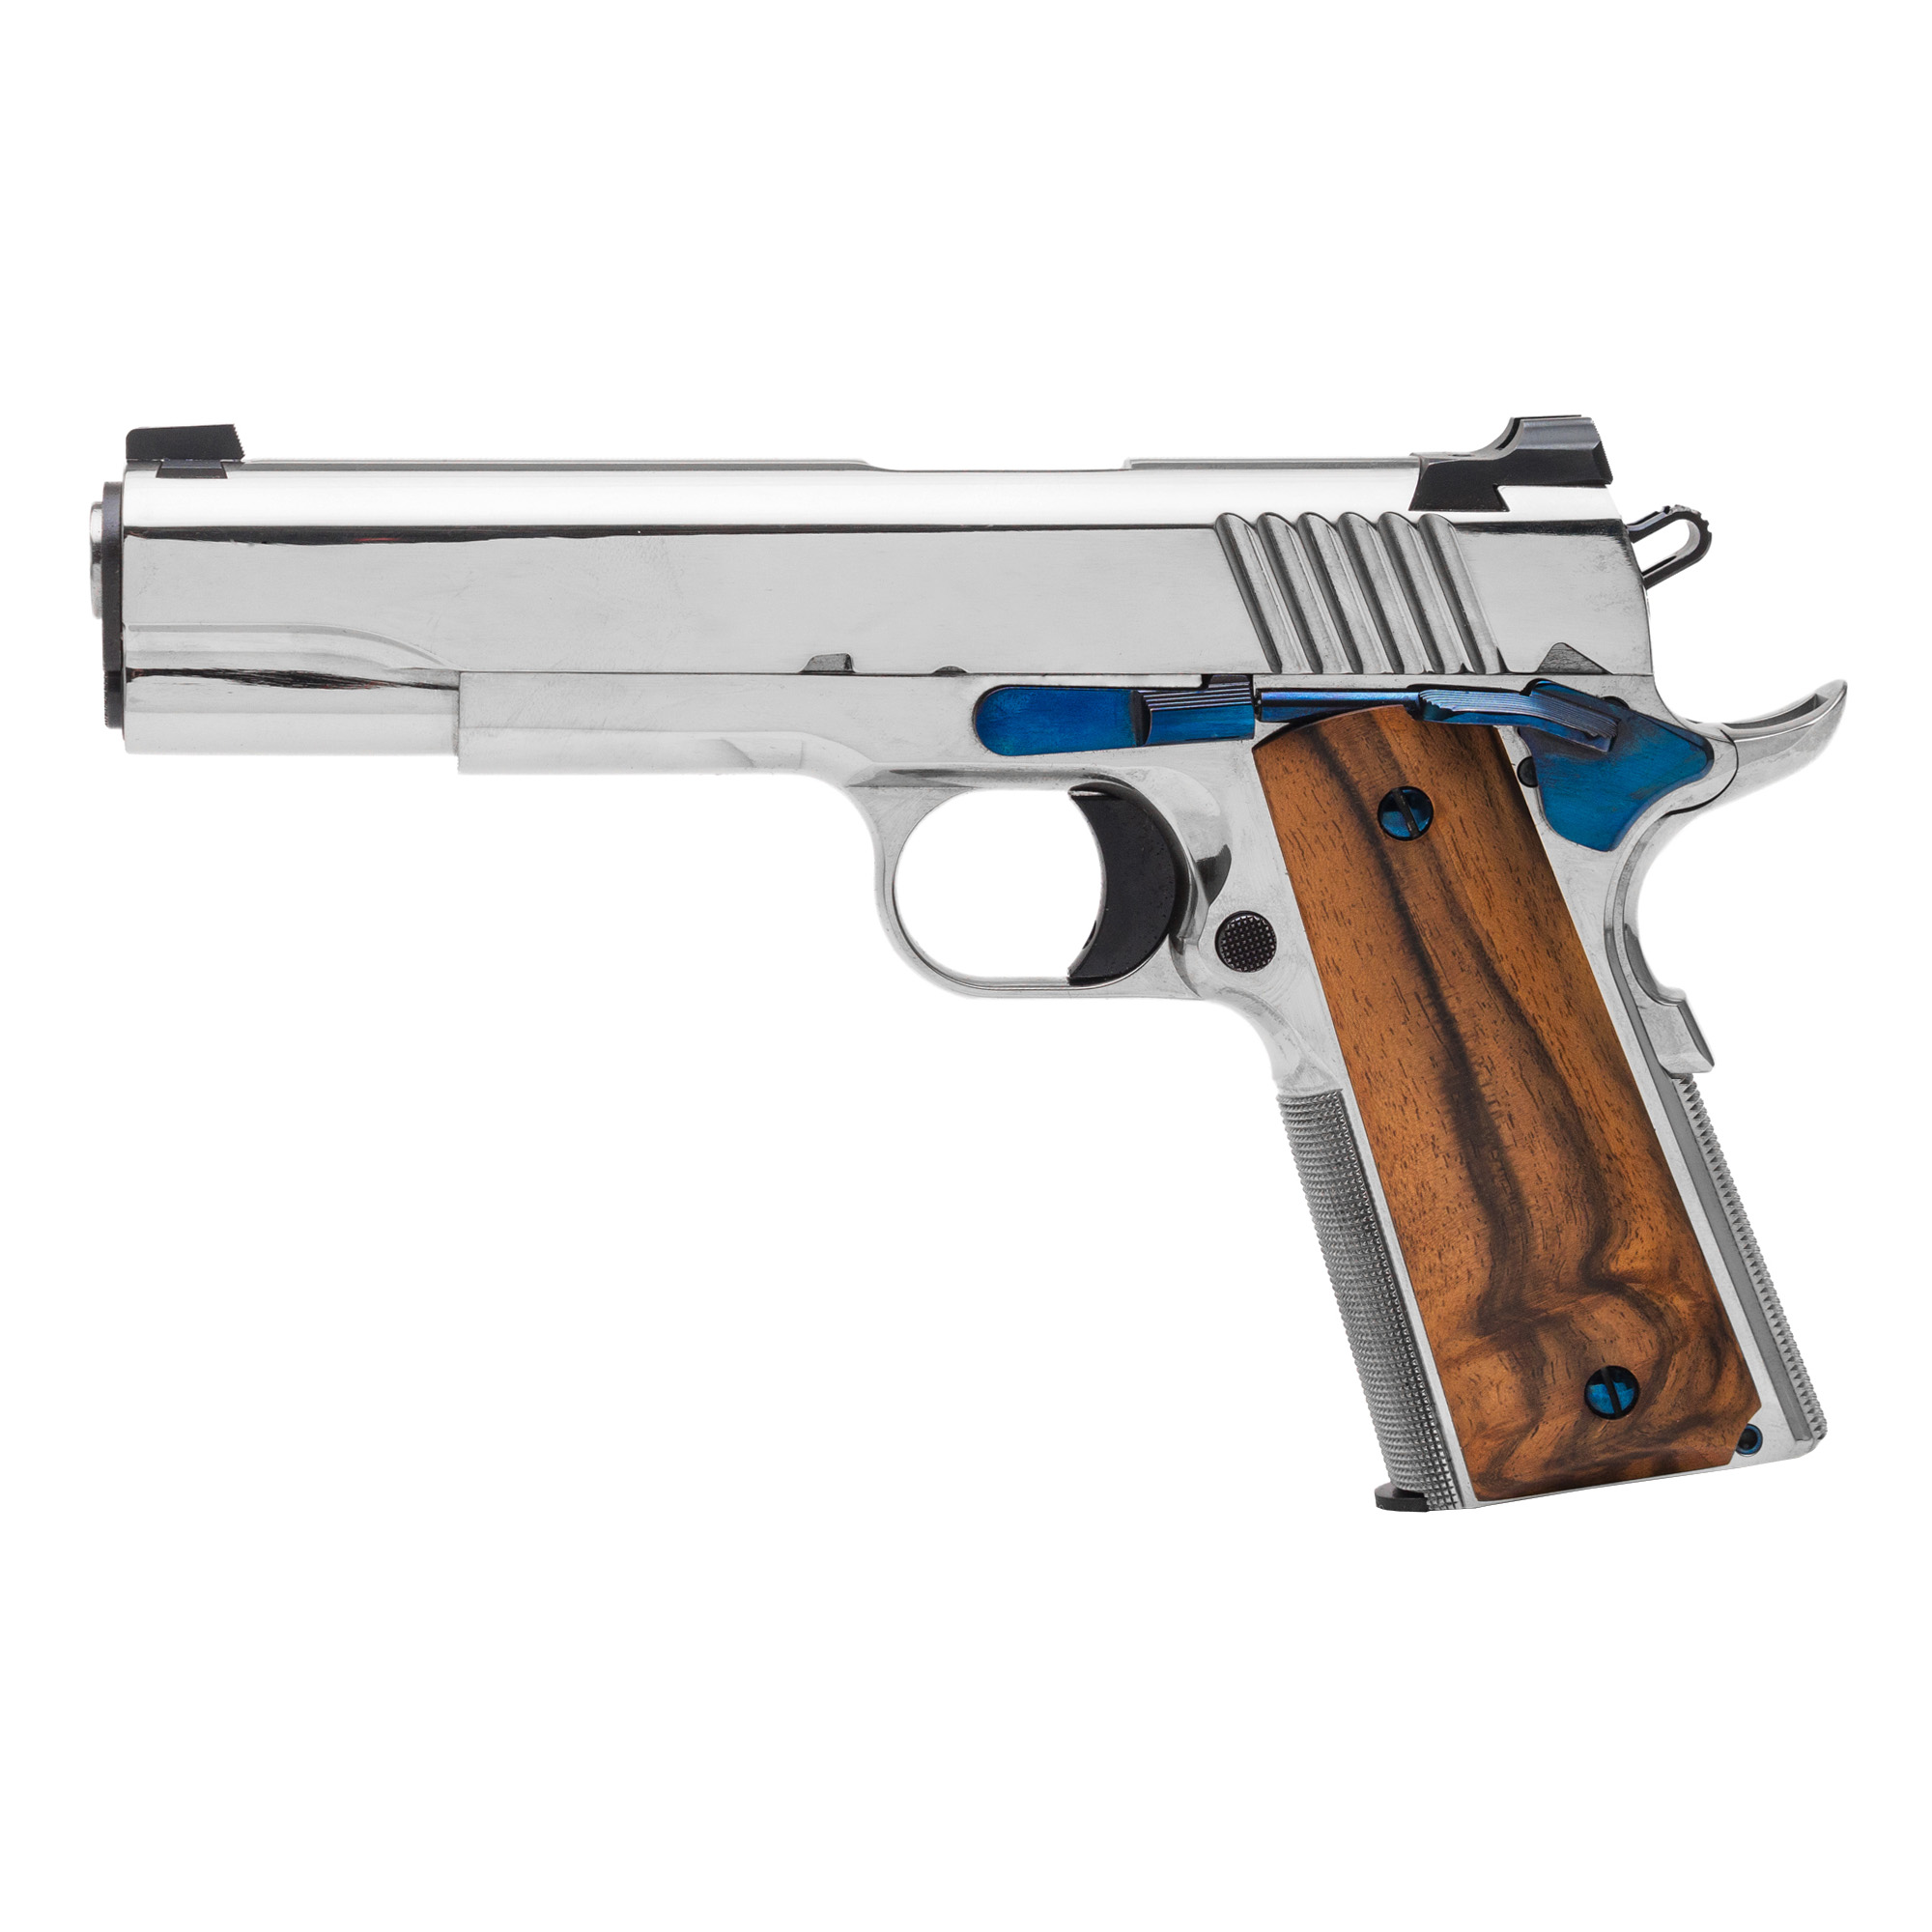 The Standard Manufacturing 1911 is the pinnacle of the gun making art. This model with its nickel finish is like no other 1911 available anywhere and at any price. To obtain this finish all metal surfaces must be meticulously prepared by our expert. No other manufacturer that we know of is capable of producing this level of finish. At all stages of manufacturing this gun we employ the same fundamental principles. All of the metal to metal fits are as perfect as can be performed by the most skilled gunsmith.